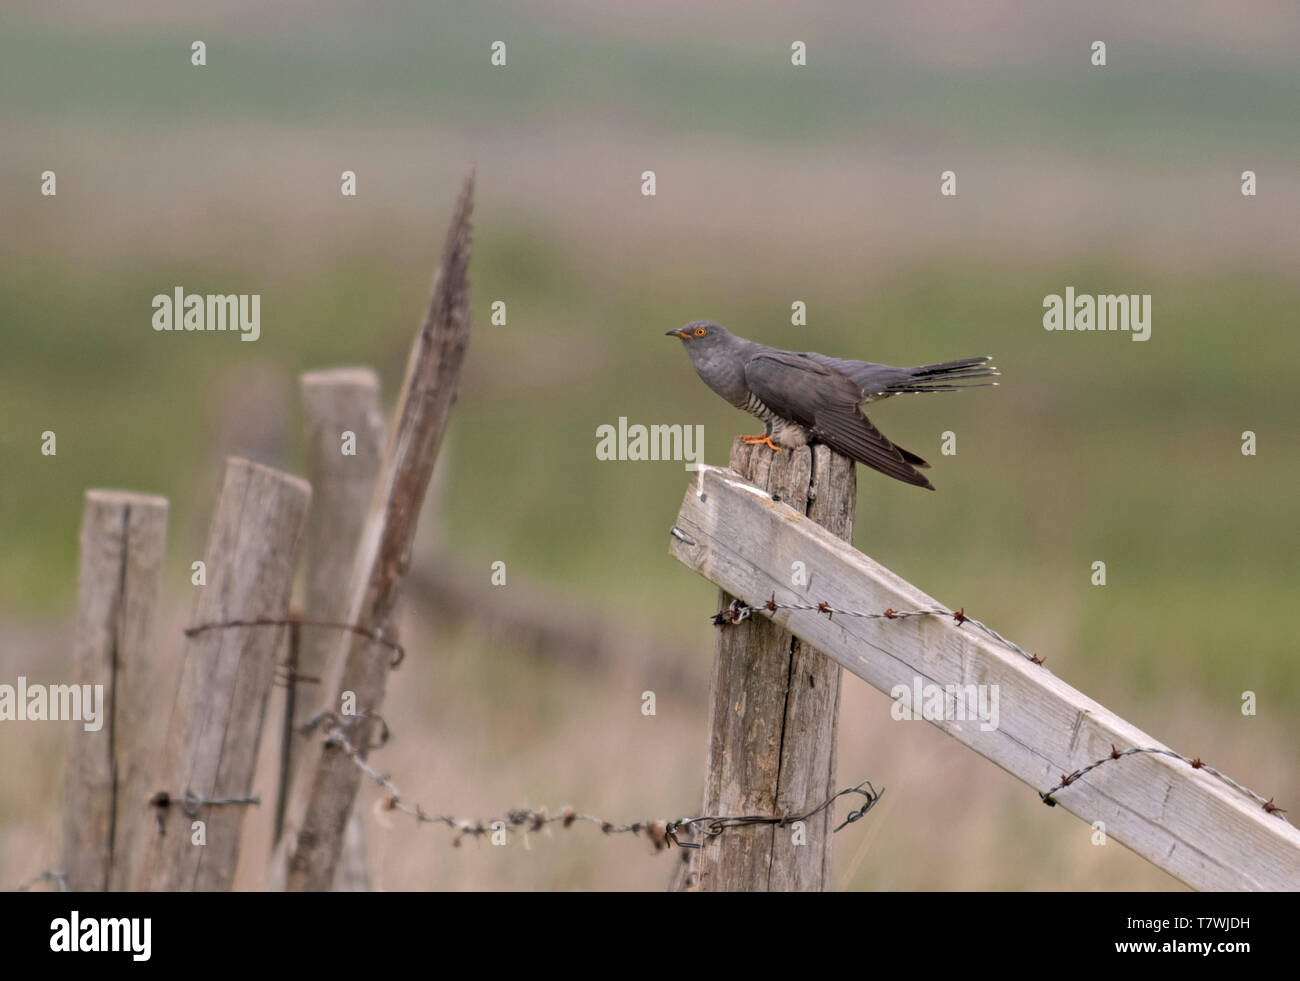 Male Cuckoo-Cuculus canorus displaying. Spring. - Stock Image